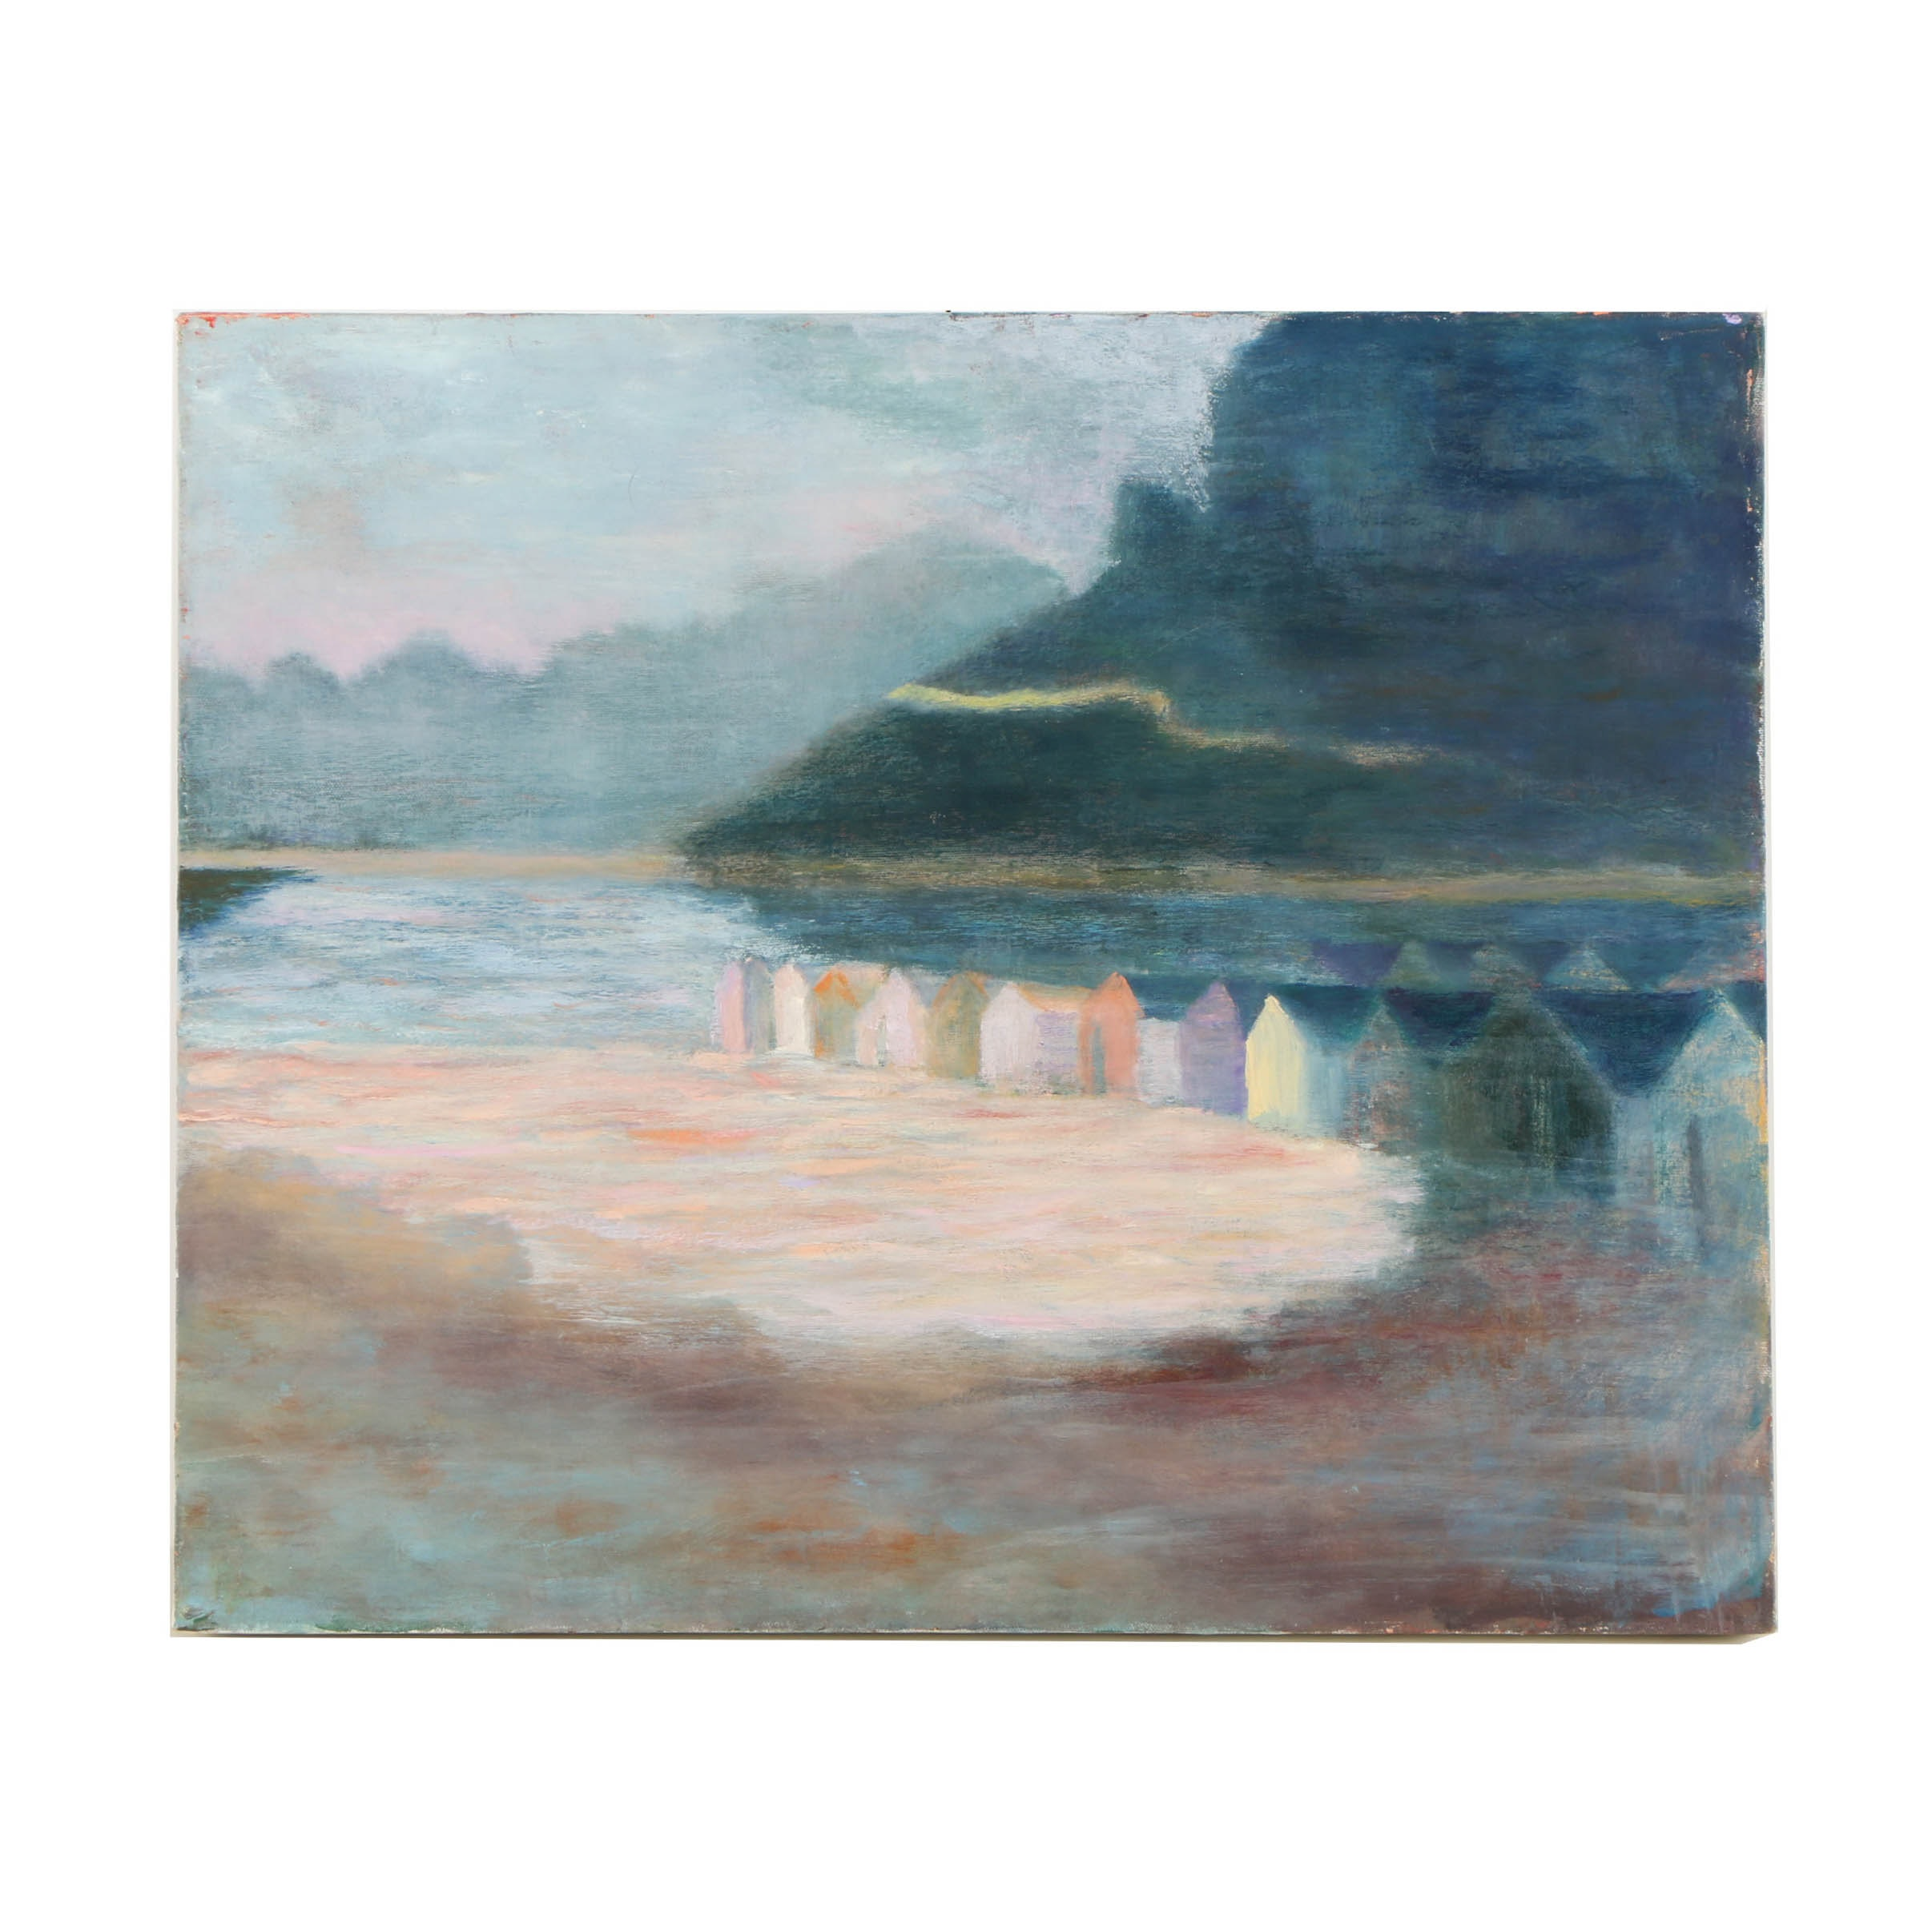 Wendy Lax Oil Painting on Canvas of Wooden Beach Huts